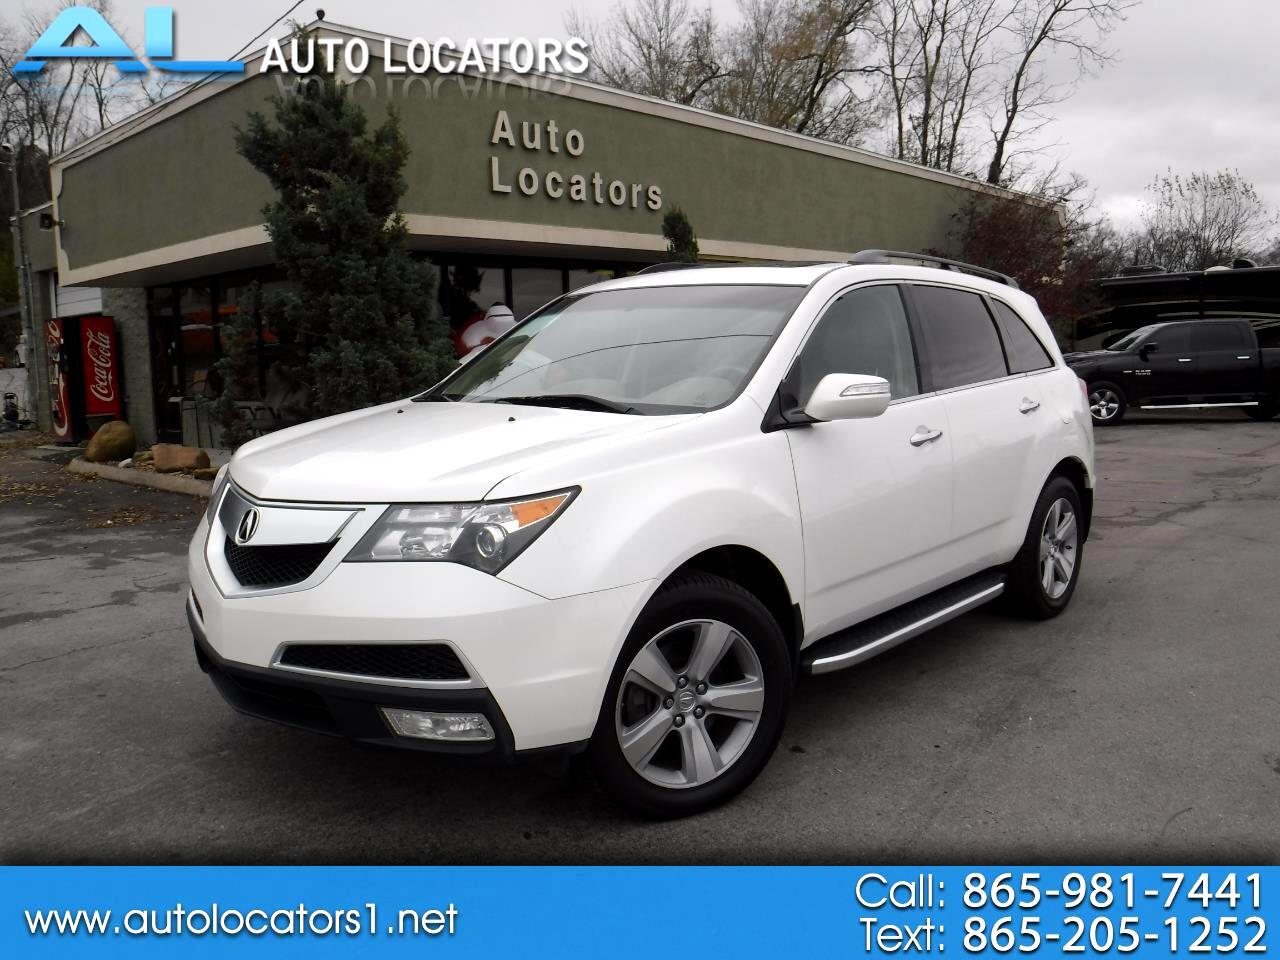 2011 Acura MDX 9-Spd AT SH-AWD w/Advance and Entertainment